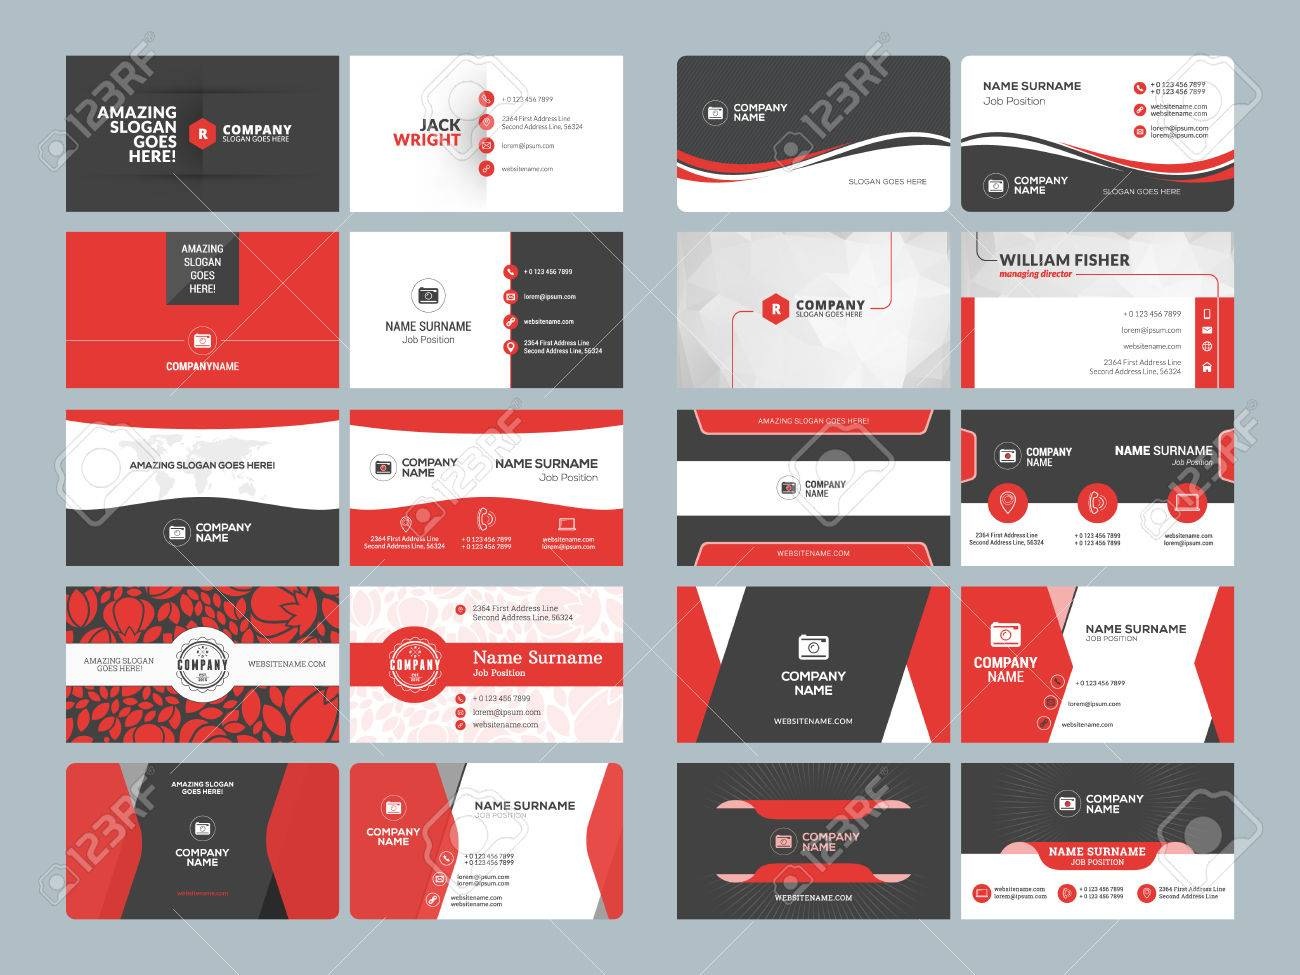 Business card templates. Stationery design vector set. Red and black colors. Flat style vector illustration - 61189915